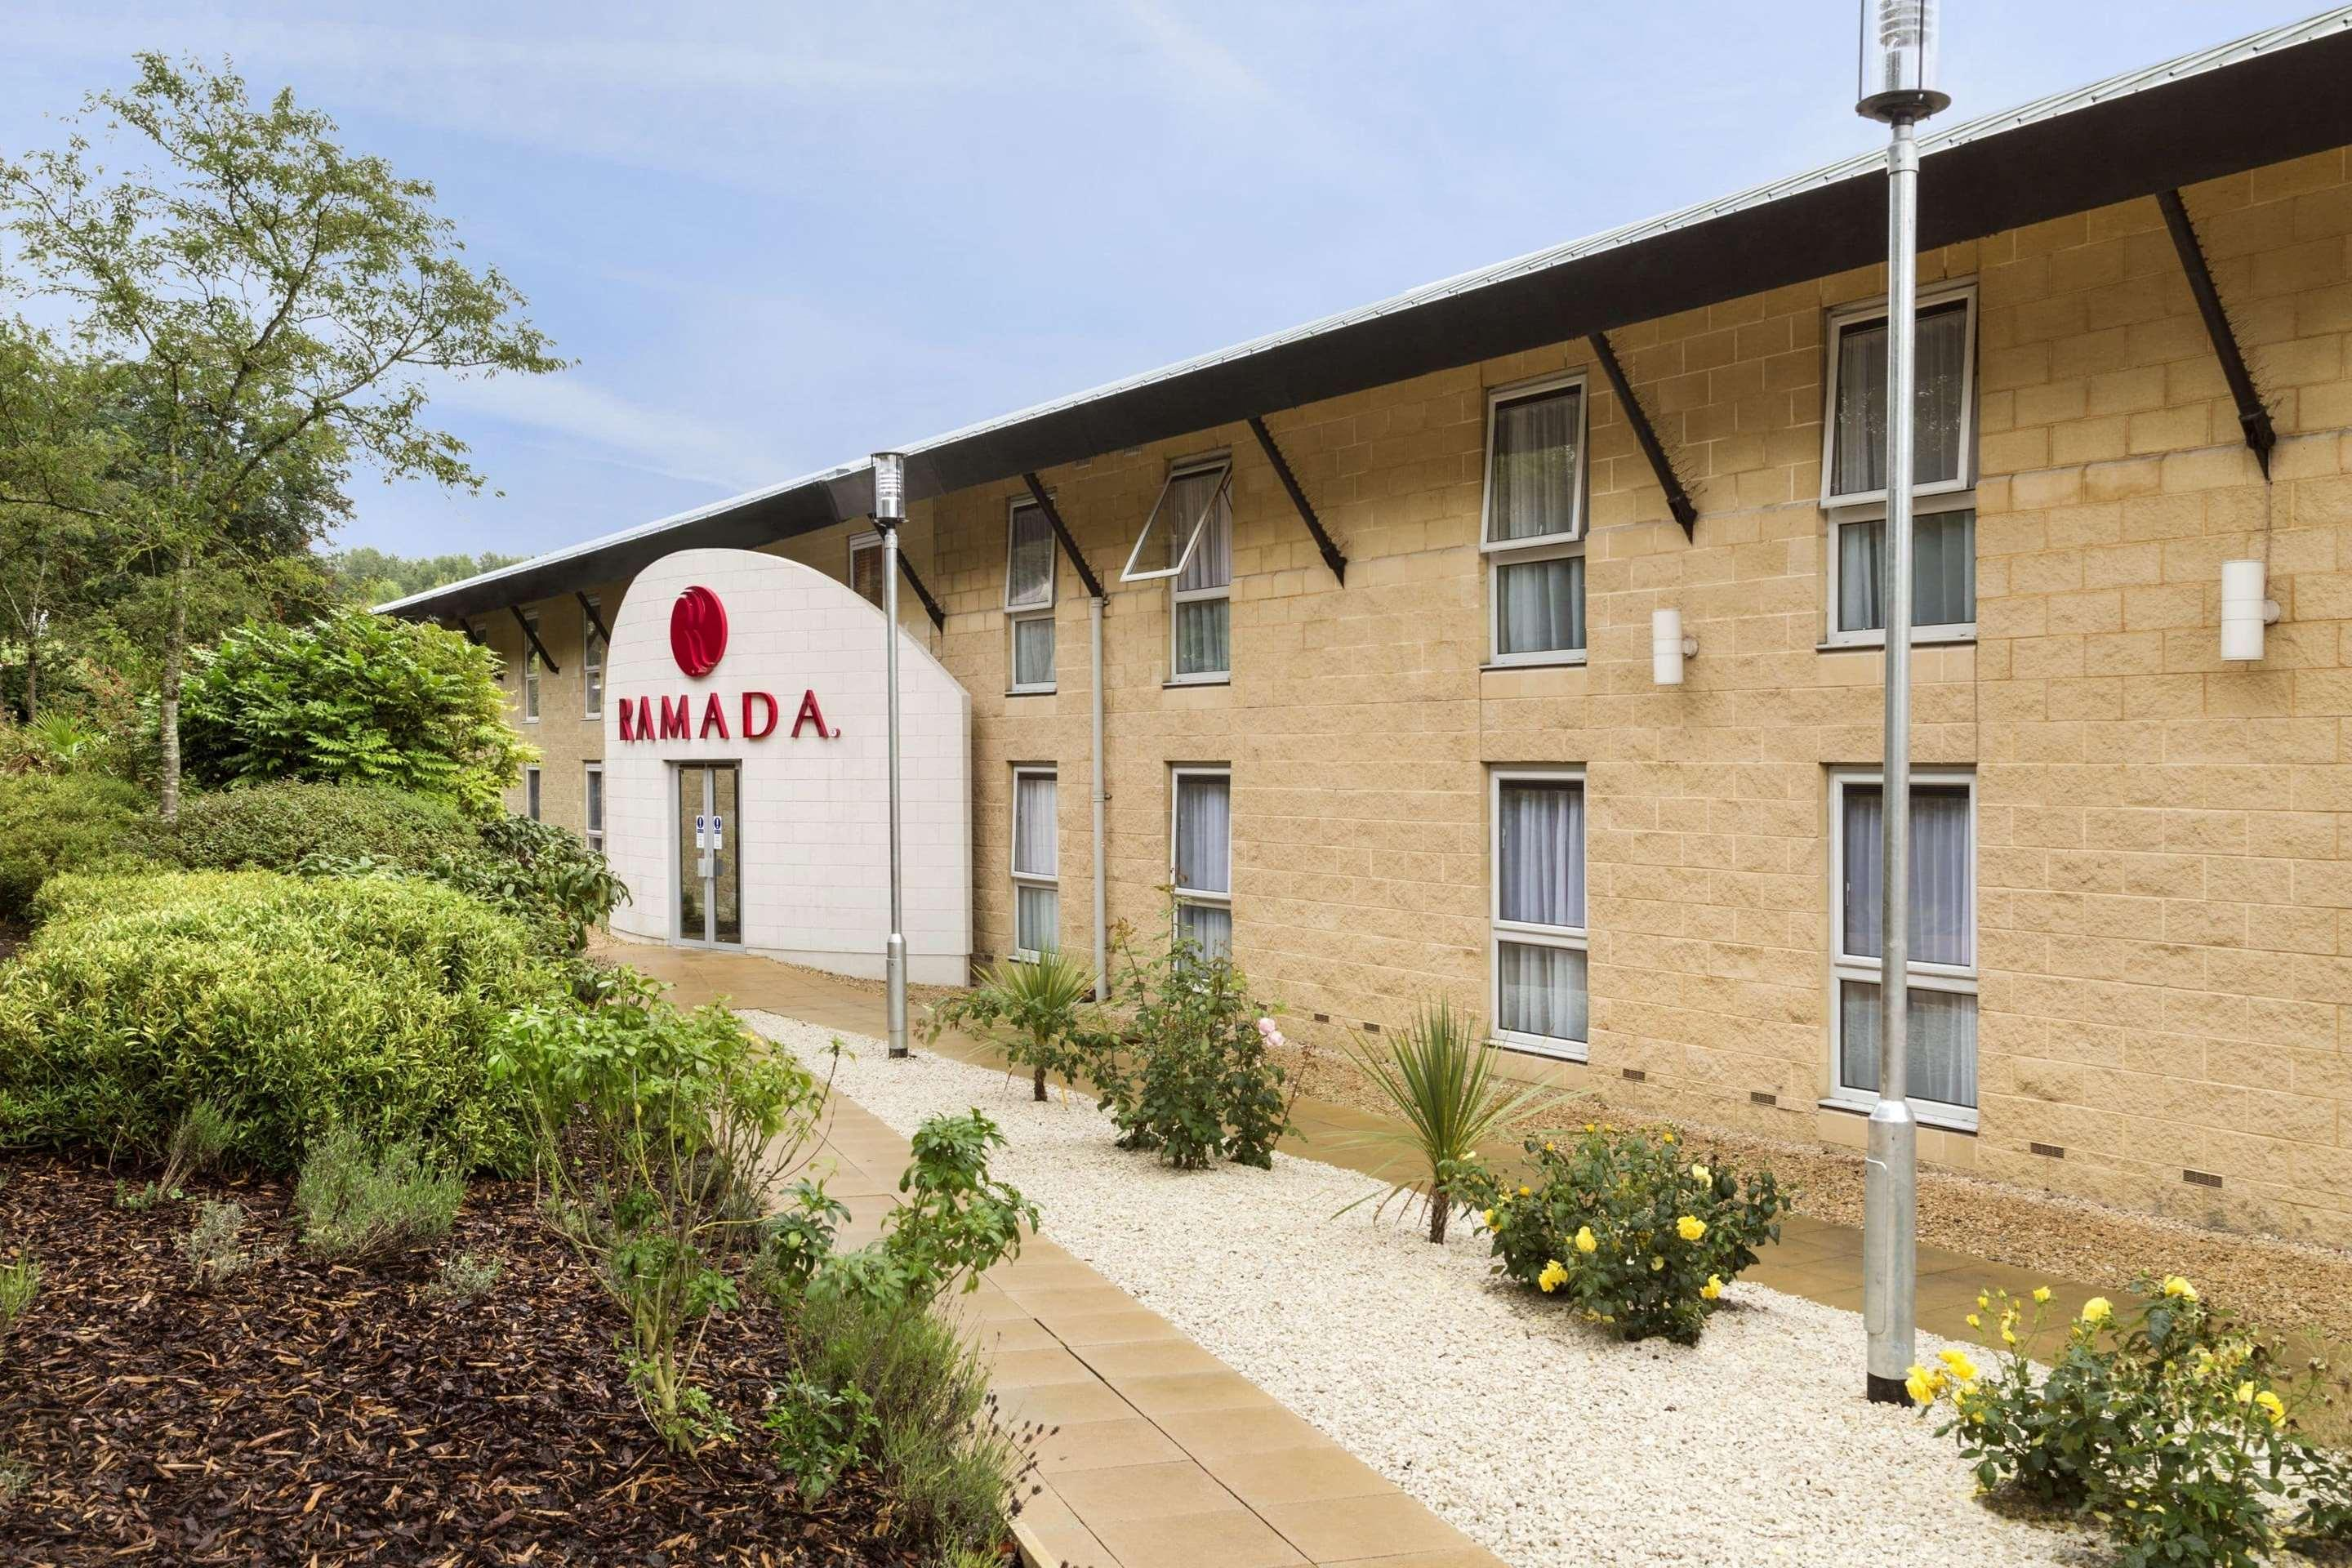 Ramada by Wyndham Oxford